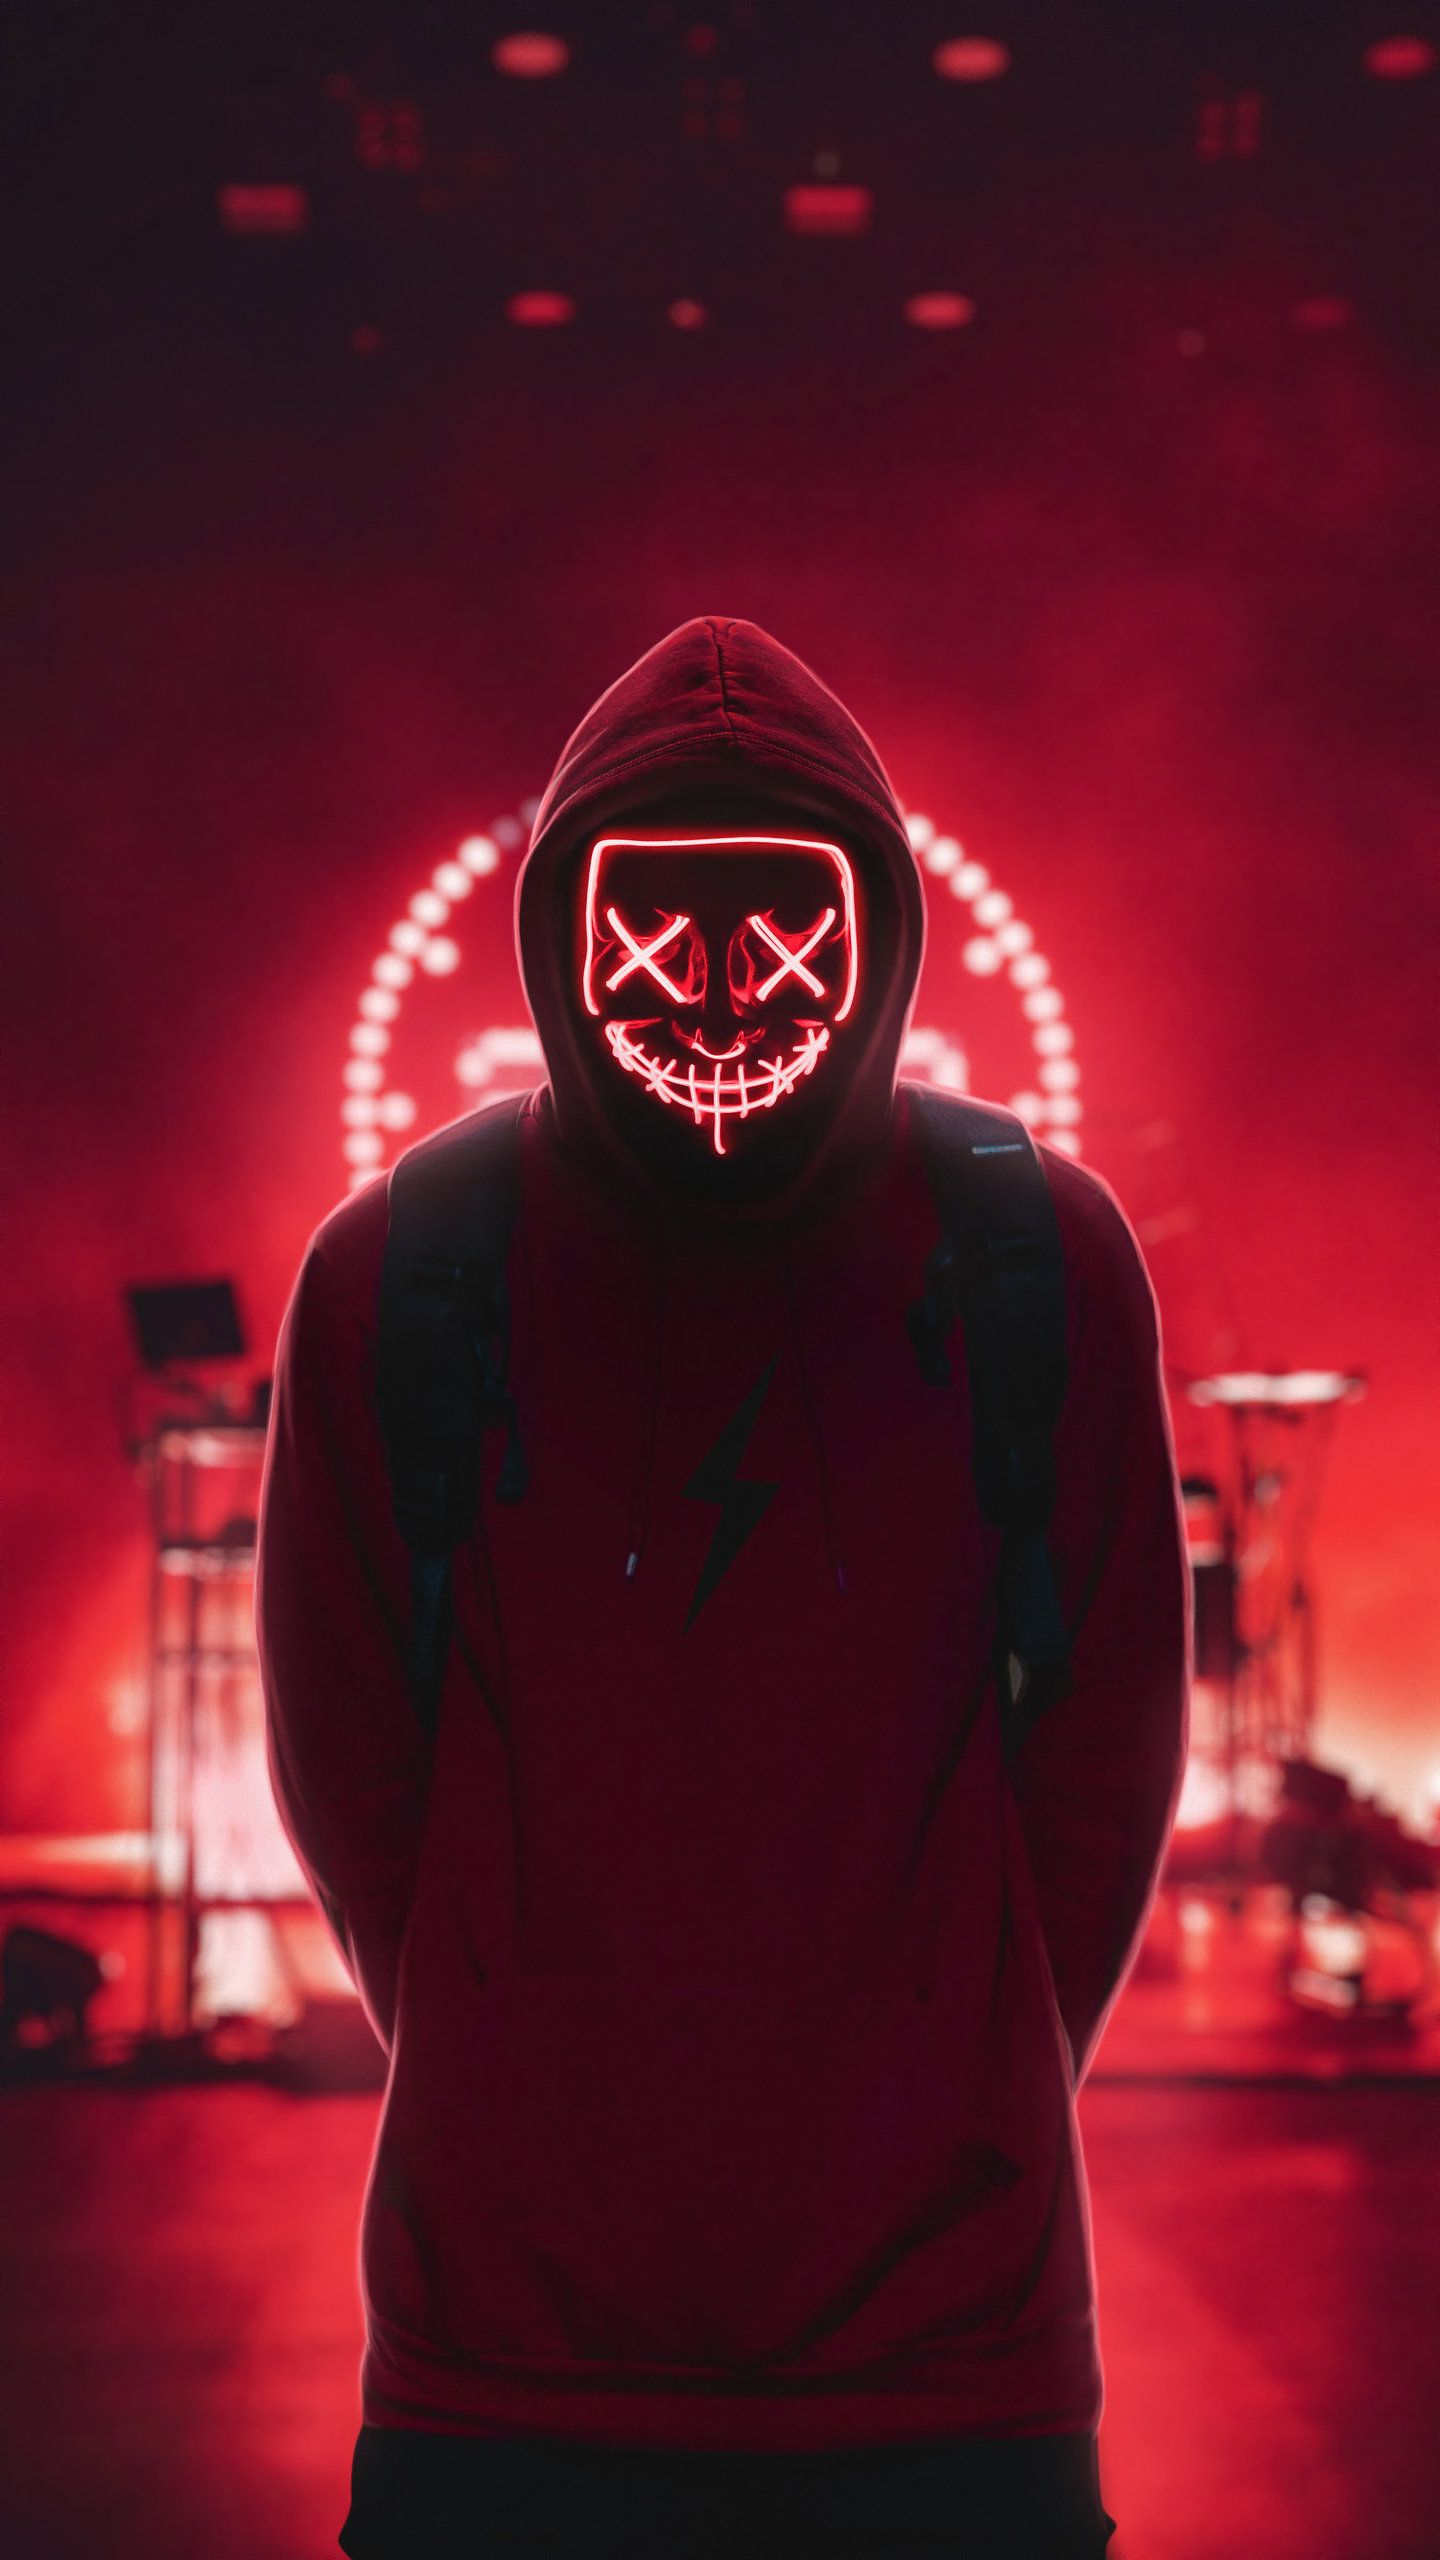 Neon Man 4K HD Wallpaper (1440x2560) (With images